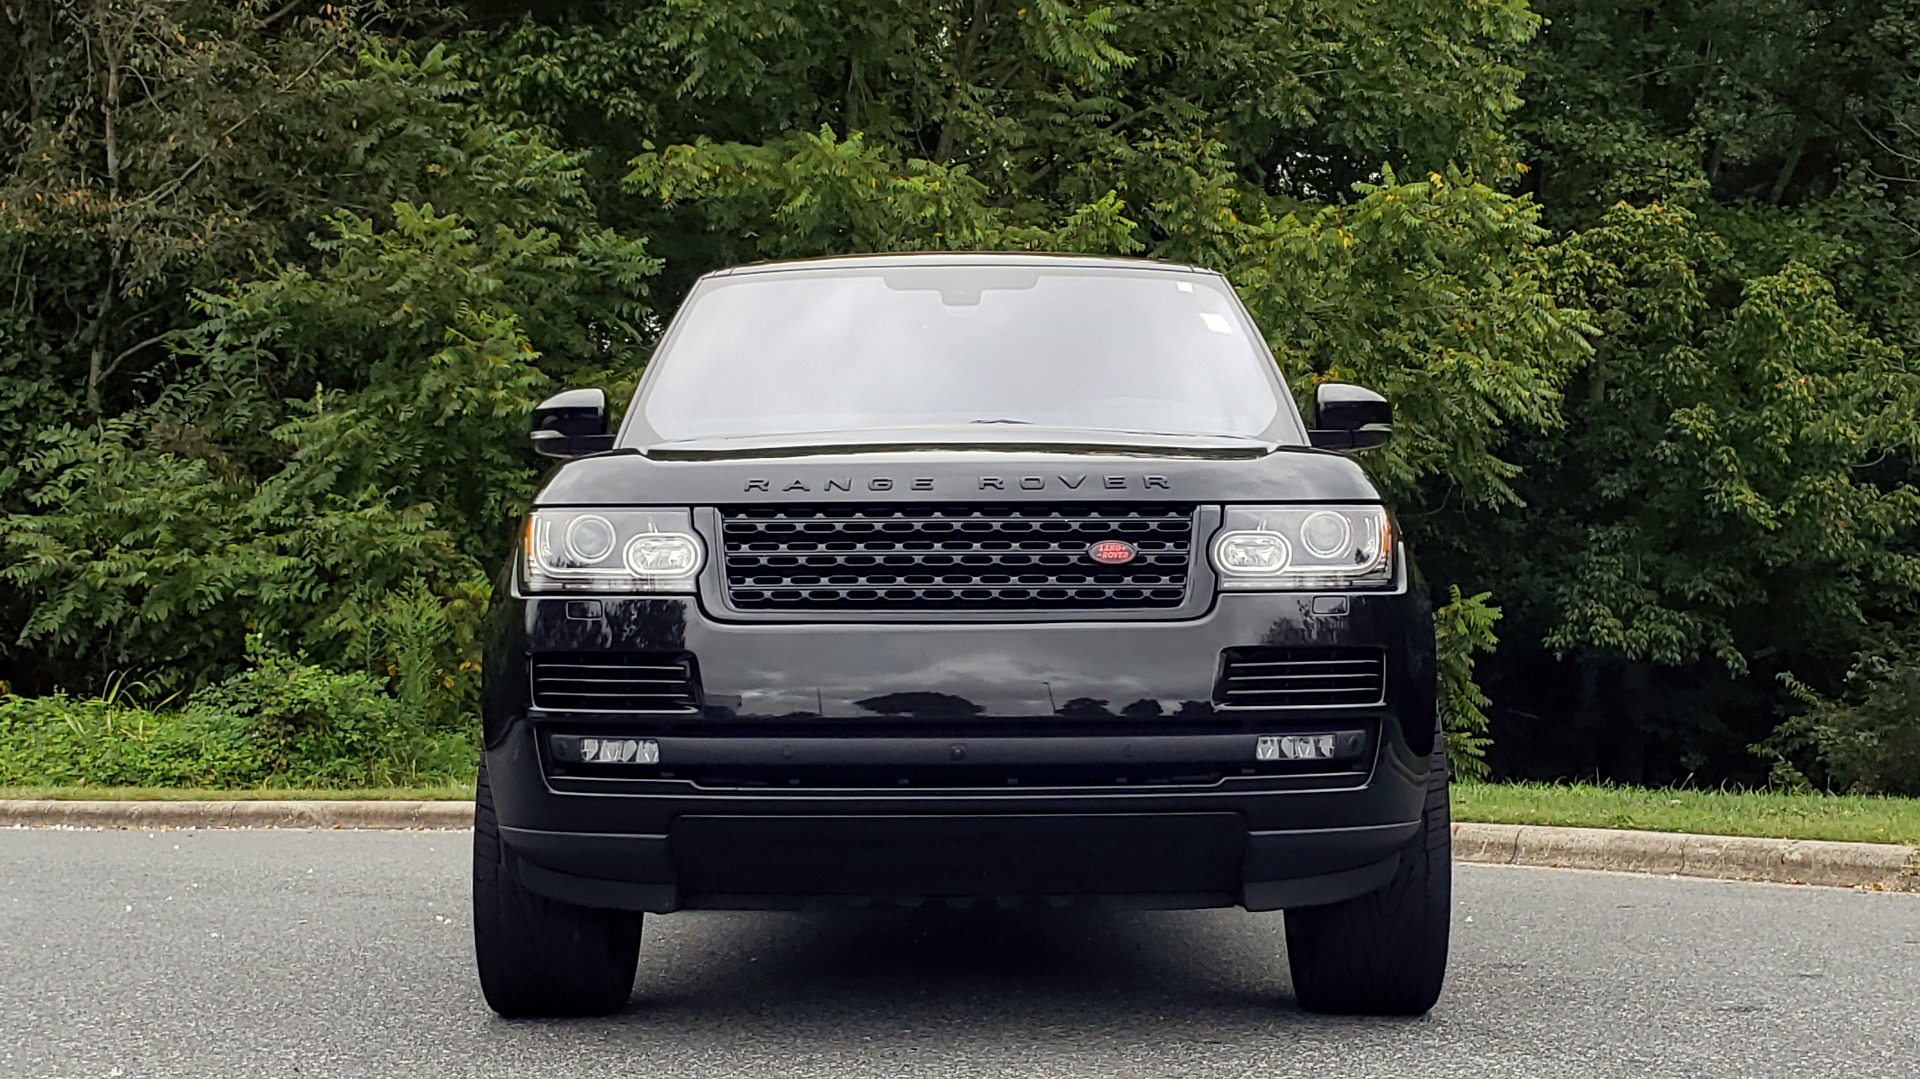 Used 2016 Land Rover RANGE ROVER AUTOBIOGRAPHY / SC-V8 / LWB / PANO-ROOF / NAV / MERIDIAN / ENT / REARVIEW for sale Sold at Formula Imports in Charlotte NC 28227 28